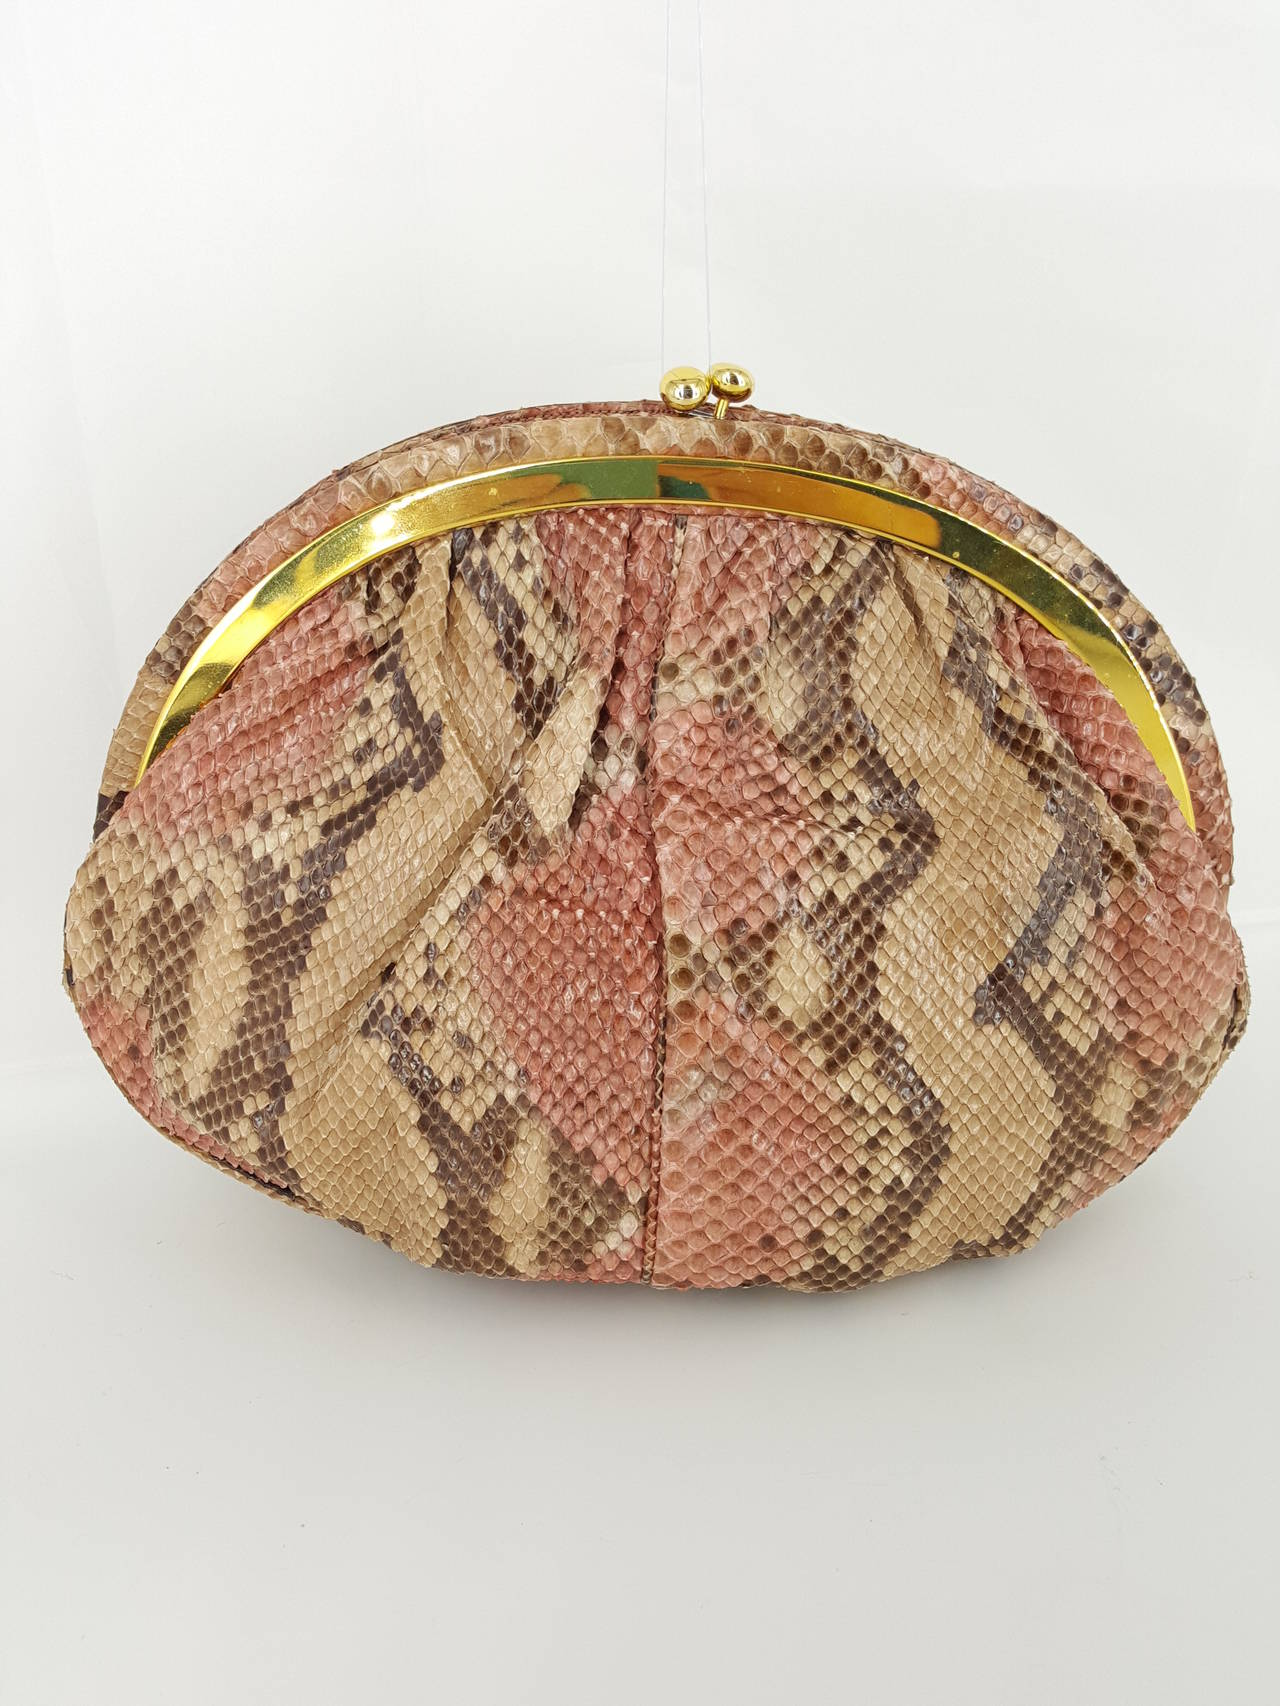 Offered for sale is this lovely large Judith Leiber python clutch/shoulder bag.  The skin is a lovely blend of brown, tan, and soft pink.  The frame is adorned with cabochon red coral and tiger eye.  The metal frame and kiss lock are in gold tone.